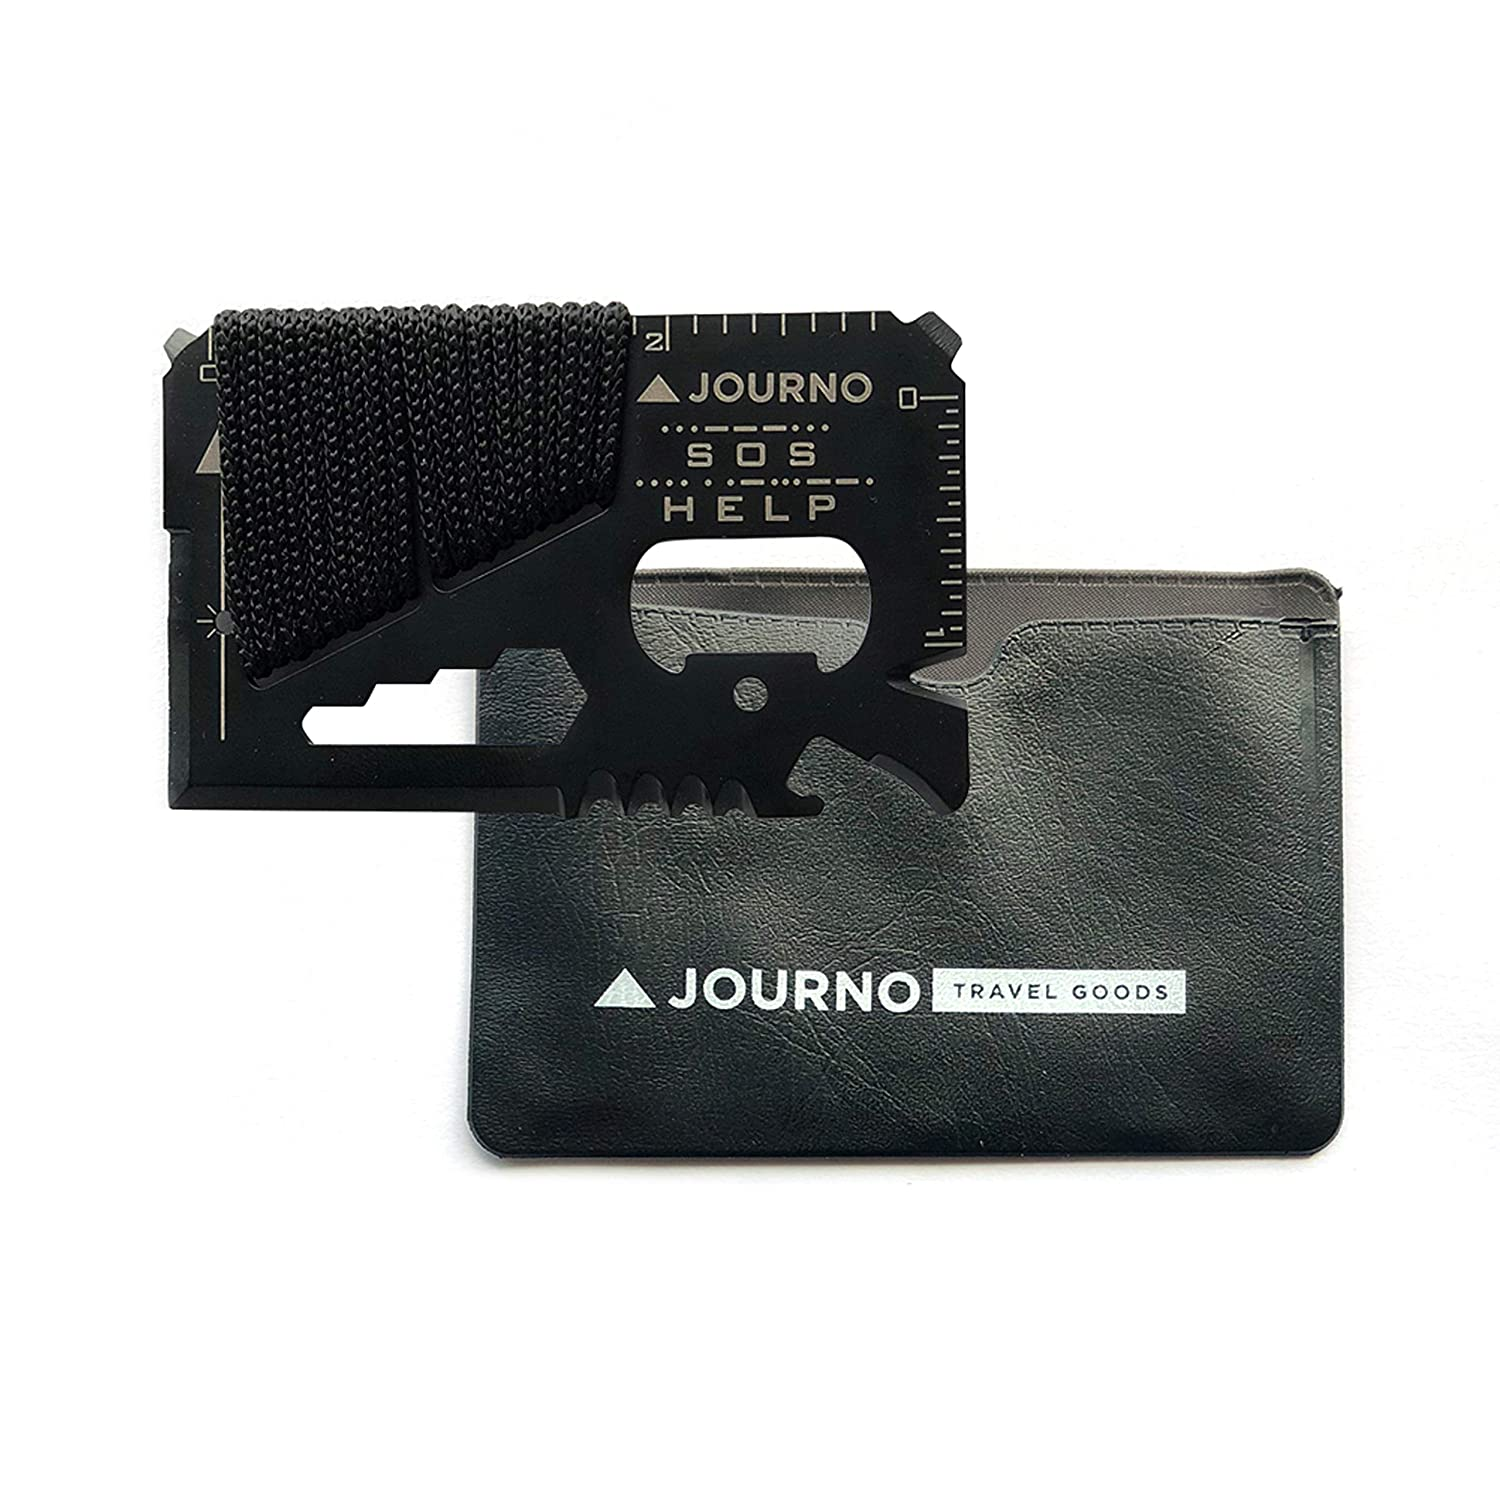 The Old Faithful 14-In-1 Pocket Survival Tool. Makes An Ideal Gift That s A Perfect Multitool For Travel, Camping, Fishing And Fits In Your Wallet Like A Credit Card. Tactical Tools Include Knives,